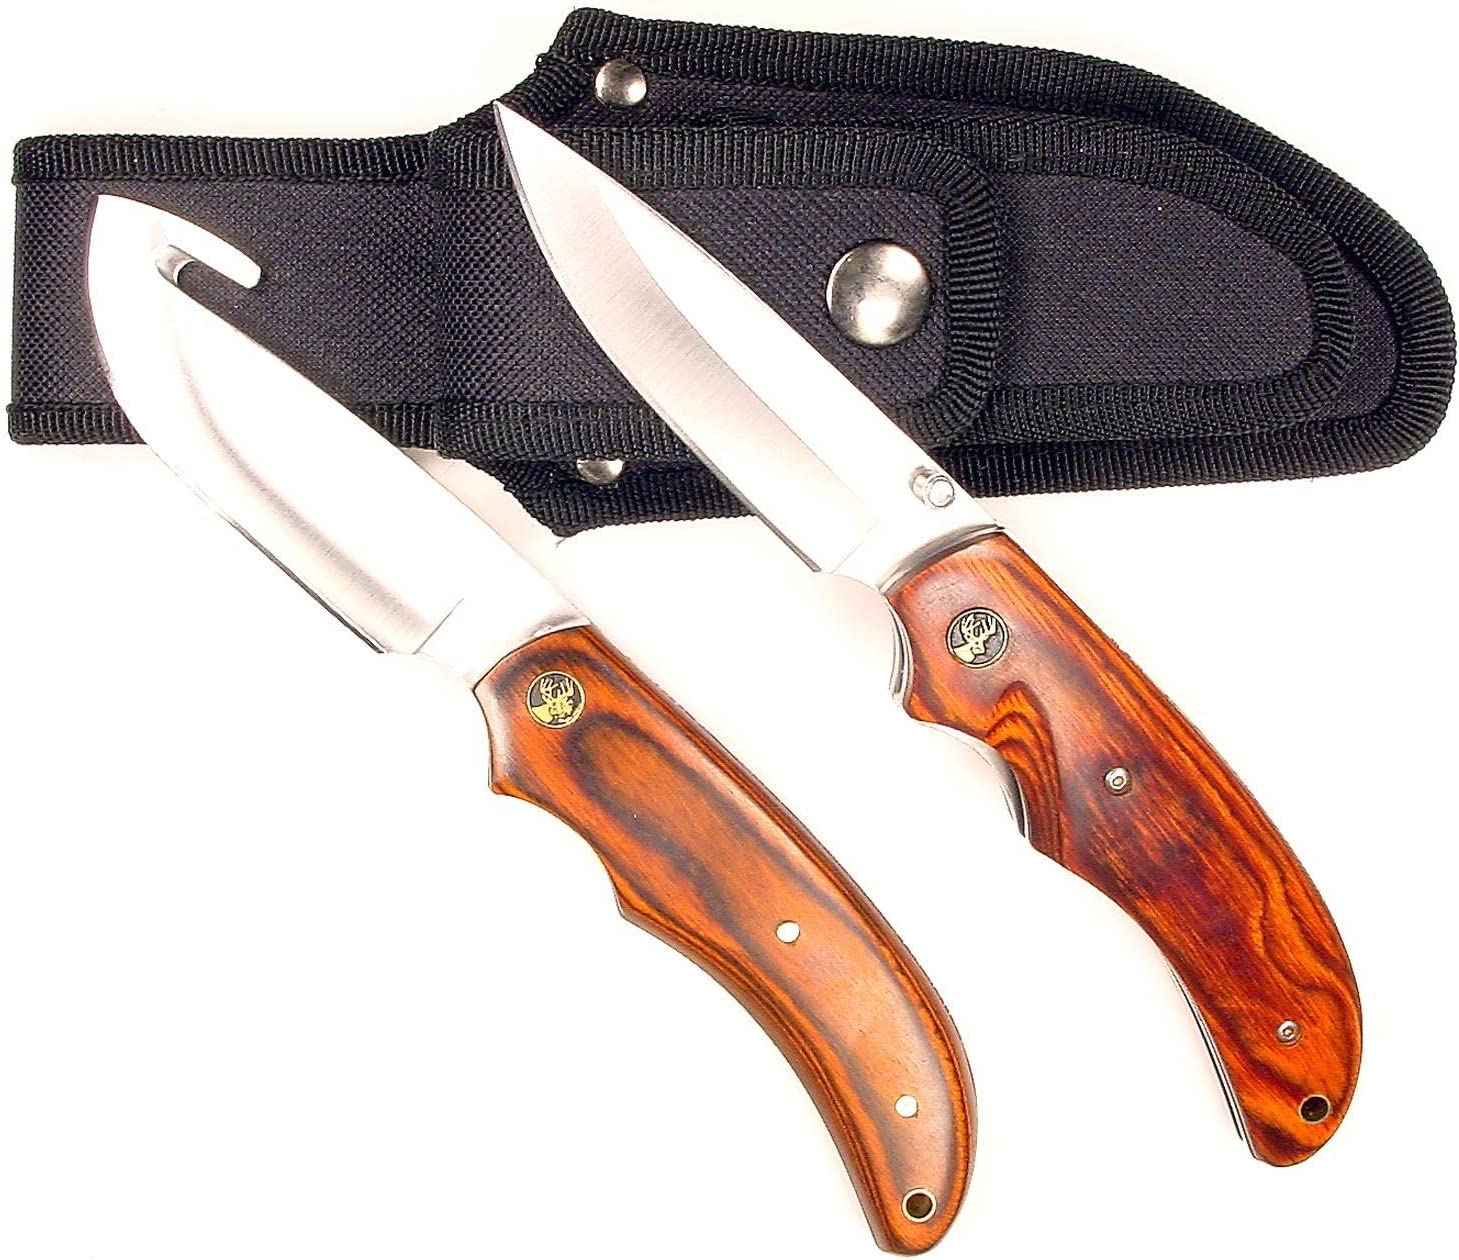 RUKO Pakkawood Handle Gut Hook Ranking TOP3 Skinning with Cheap mail order specialty store Folding K Set Knife